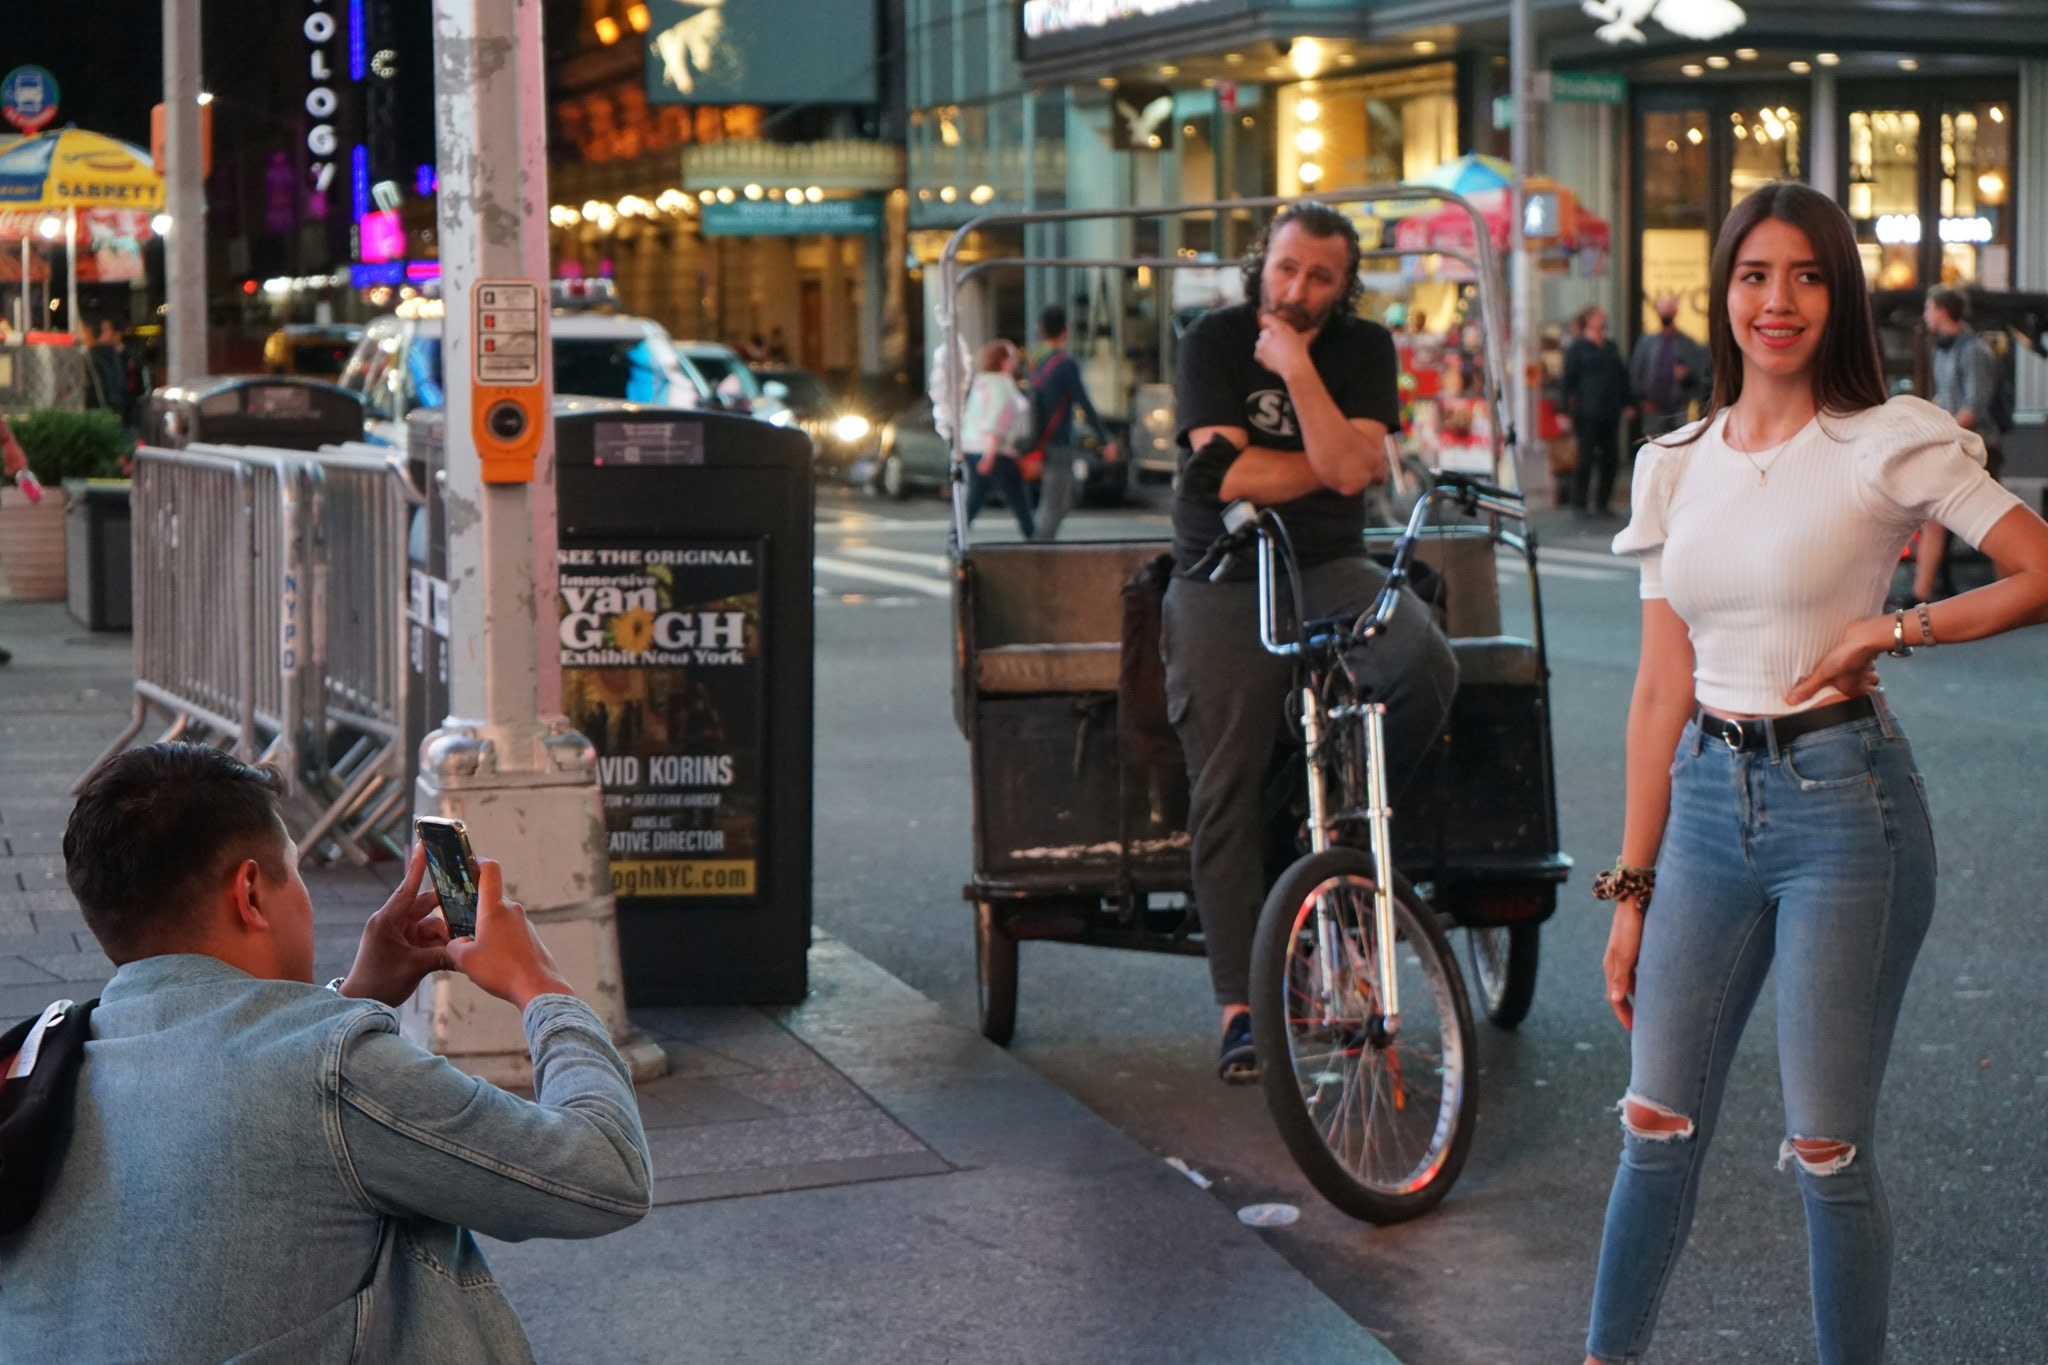 Tourists in Times Square